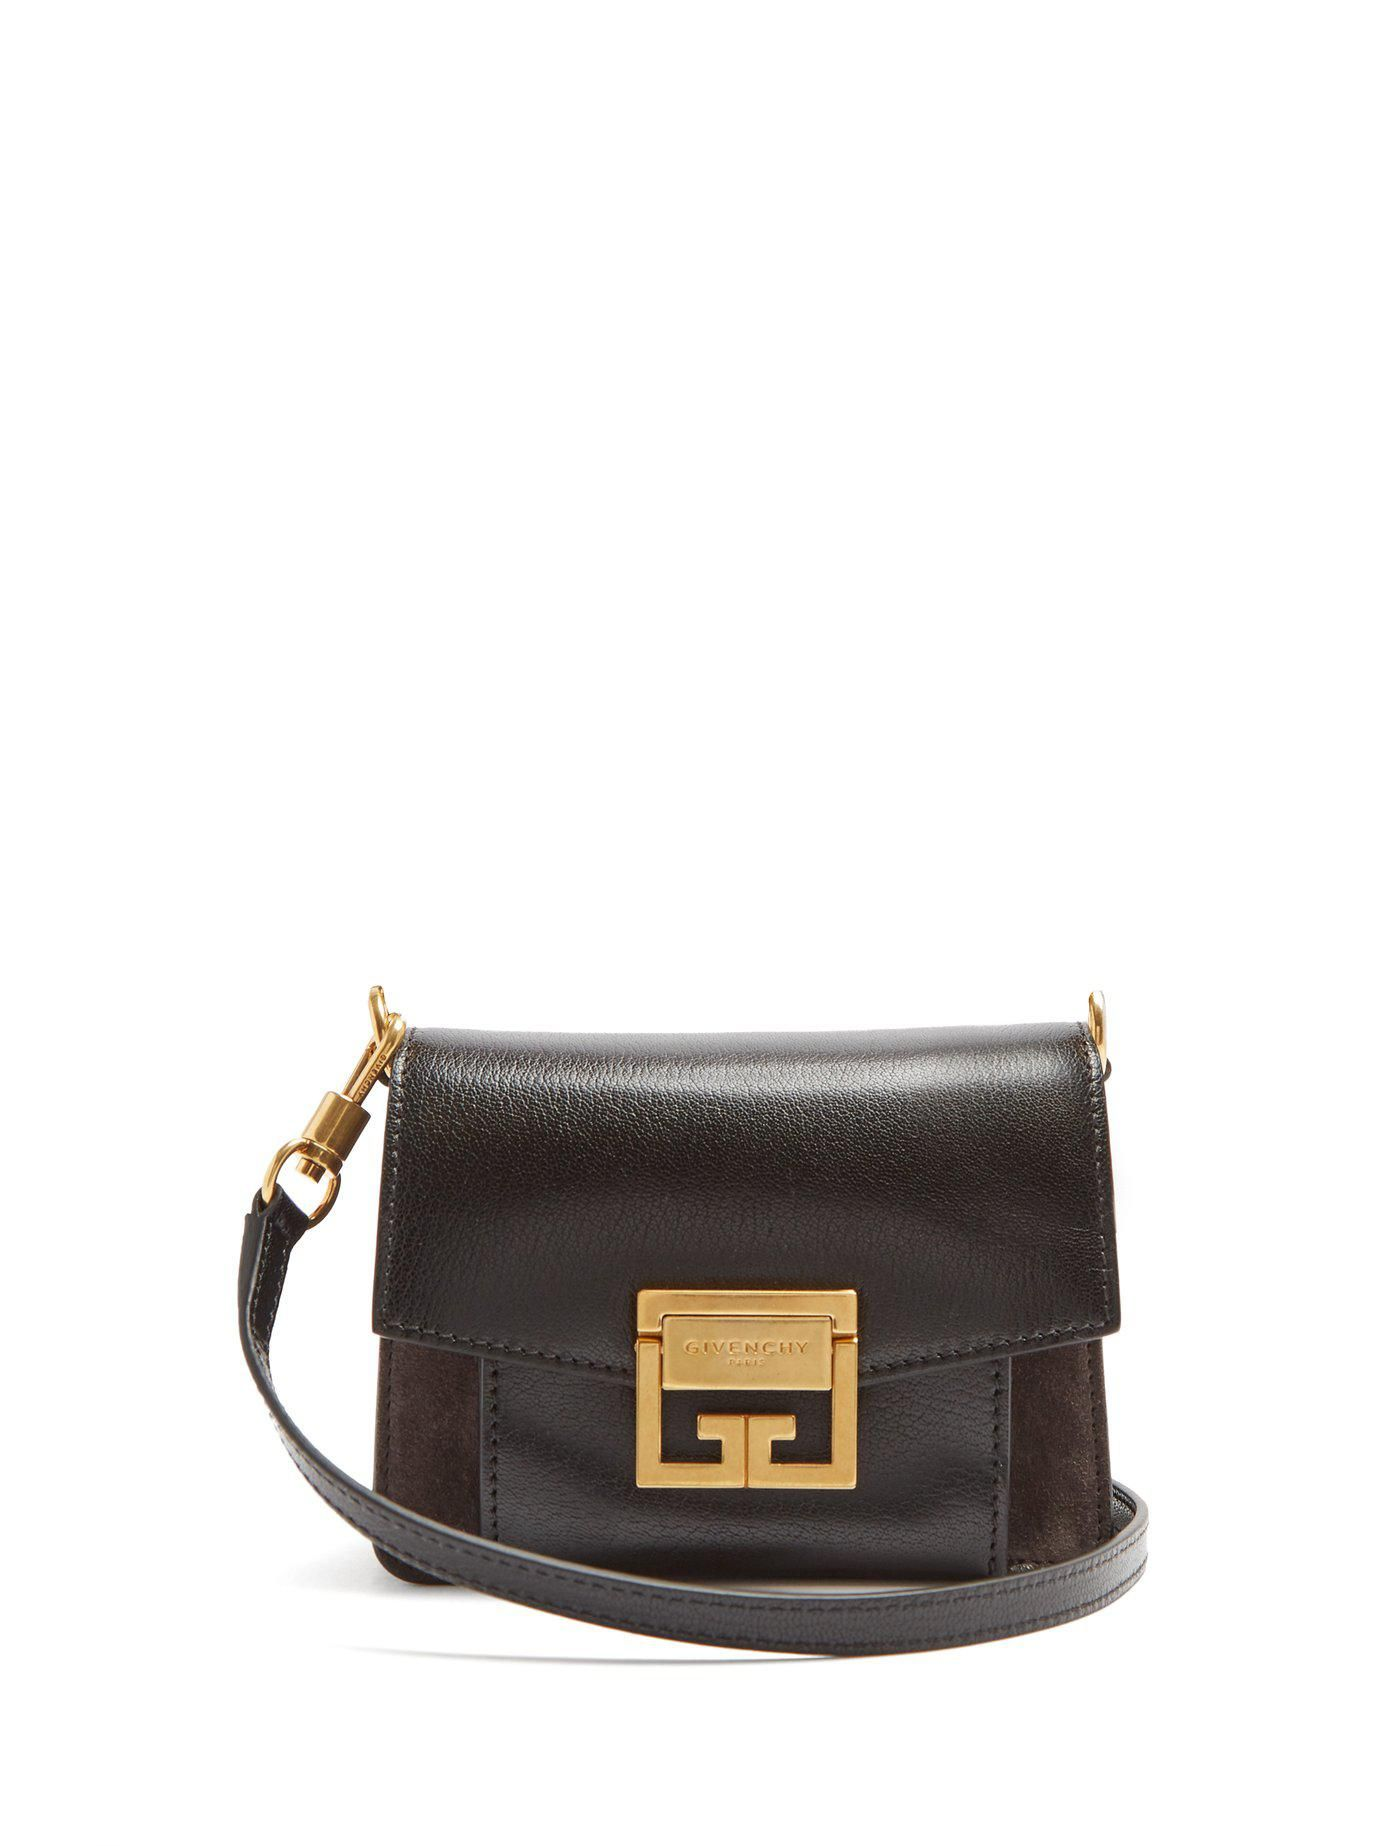 3ea45e62d44 Women s Black Gv3 Mini Suede And Leather Cross-body Bag in 2018 ...